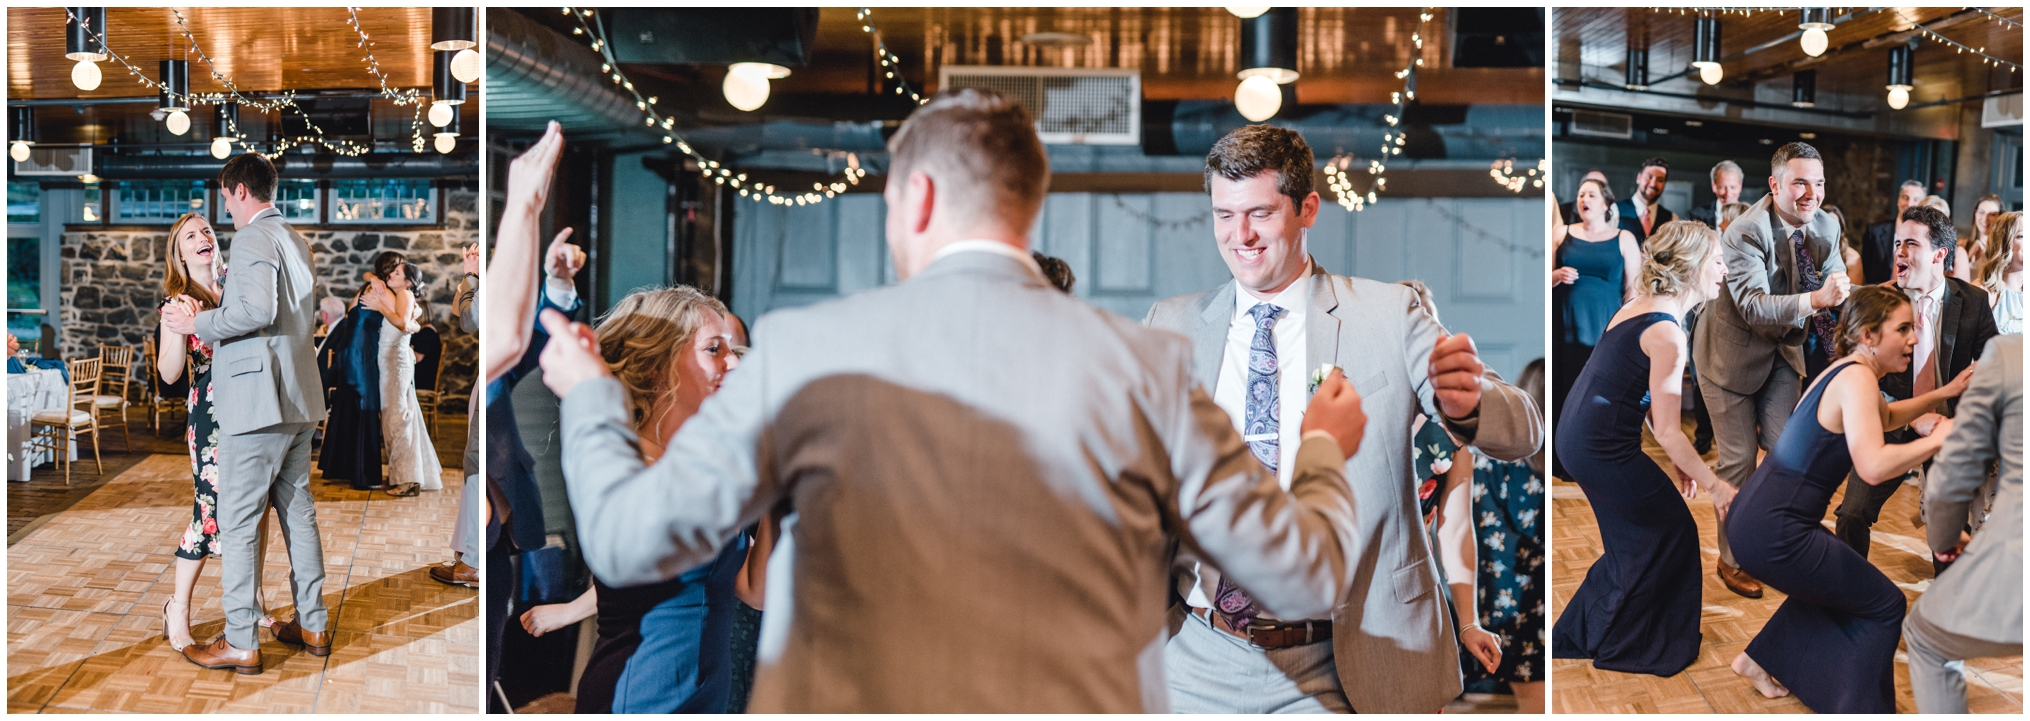 Krista Brackin Photography | April Wedding at The Carriage House at Rockwood Park_0115.jpg